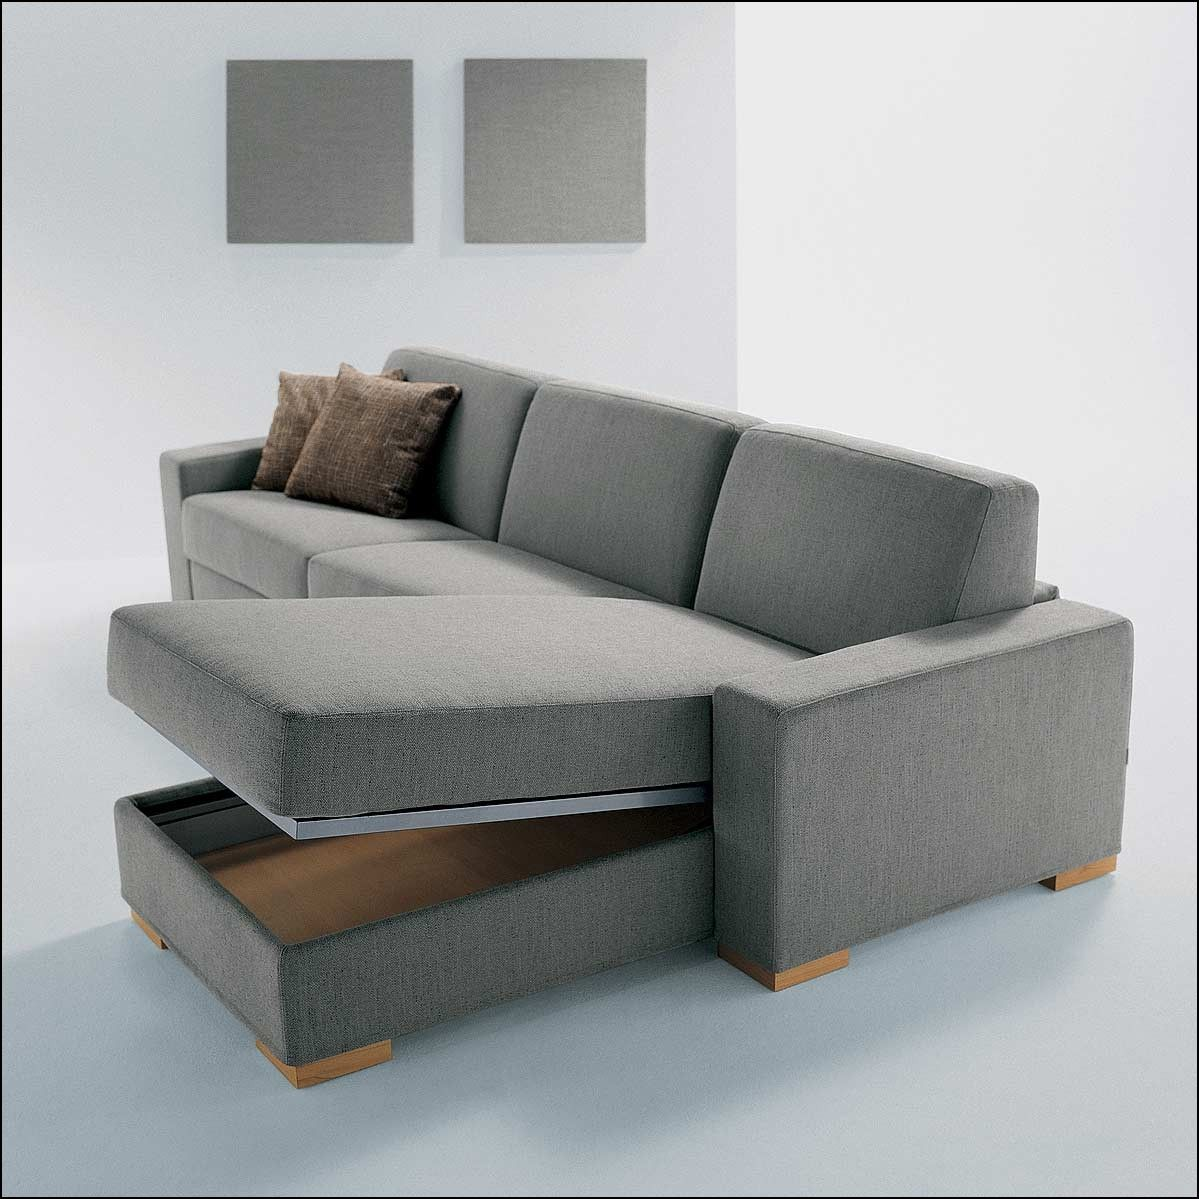 L Shaped Couch With Storage Sofa Bed With Storage Sofa Design